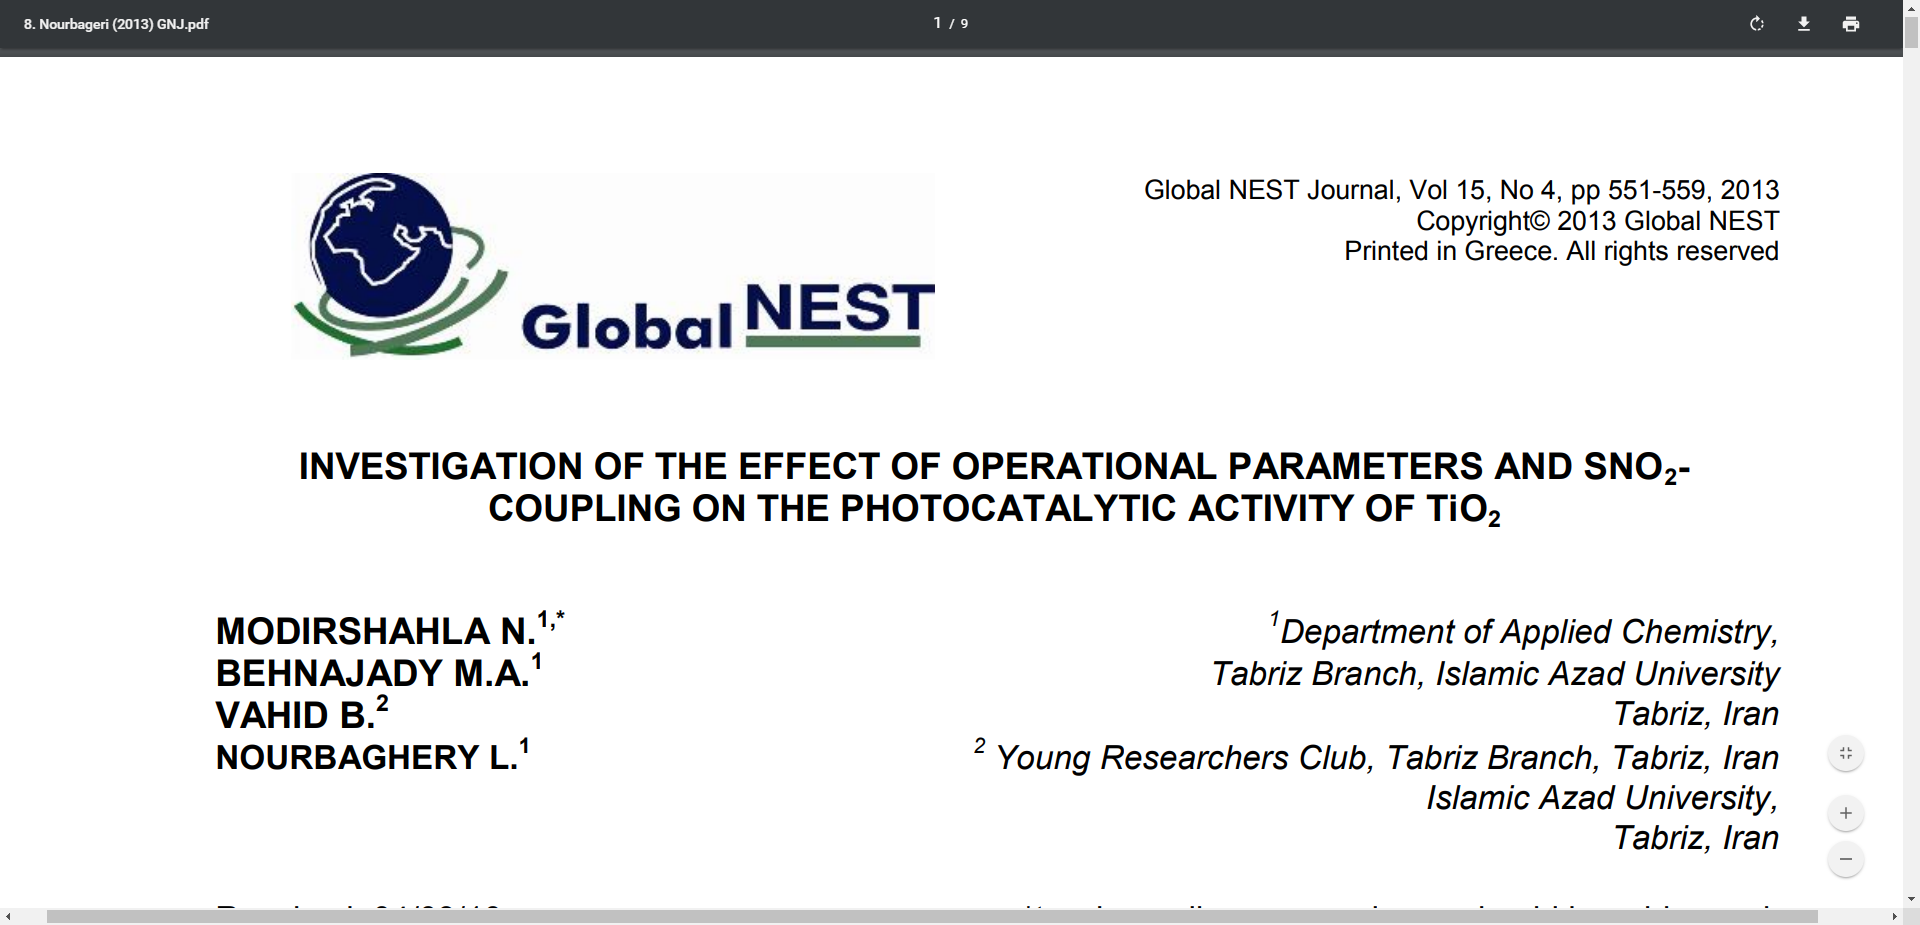 INVESTIGATION OF THE EFFECT OF OPERATIONAL PARAMETERS